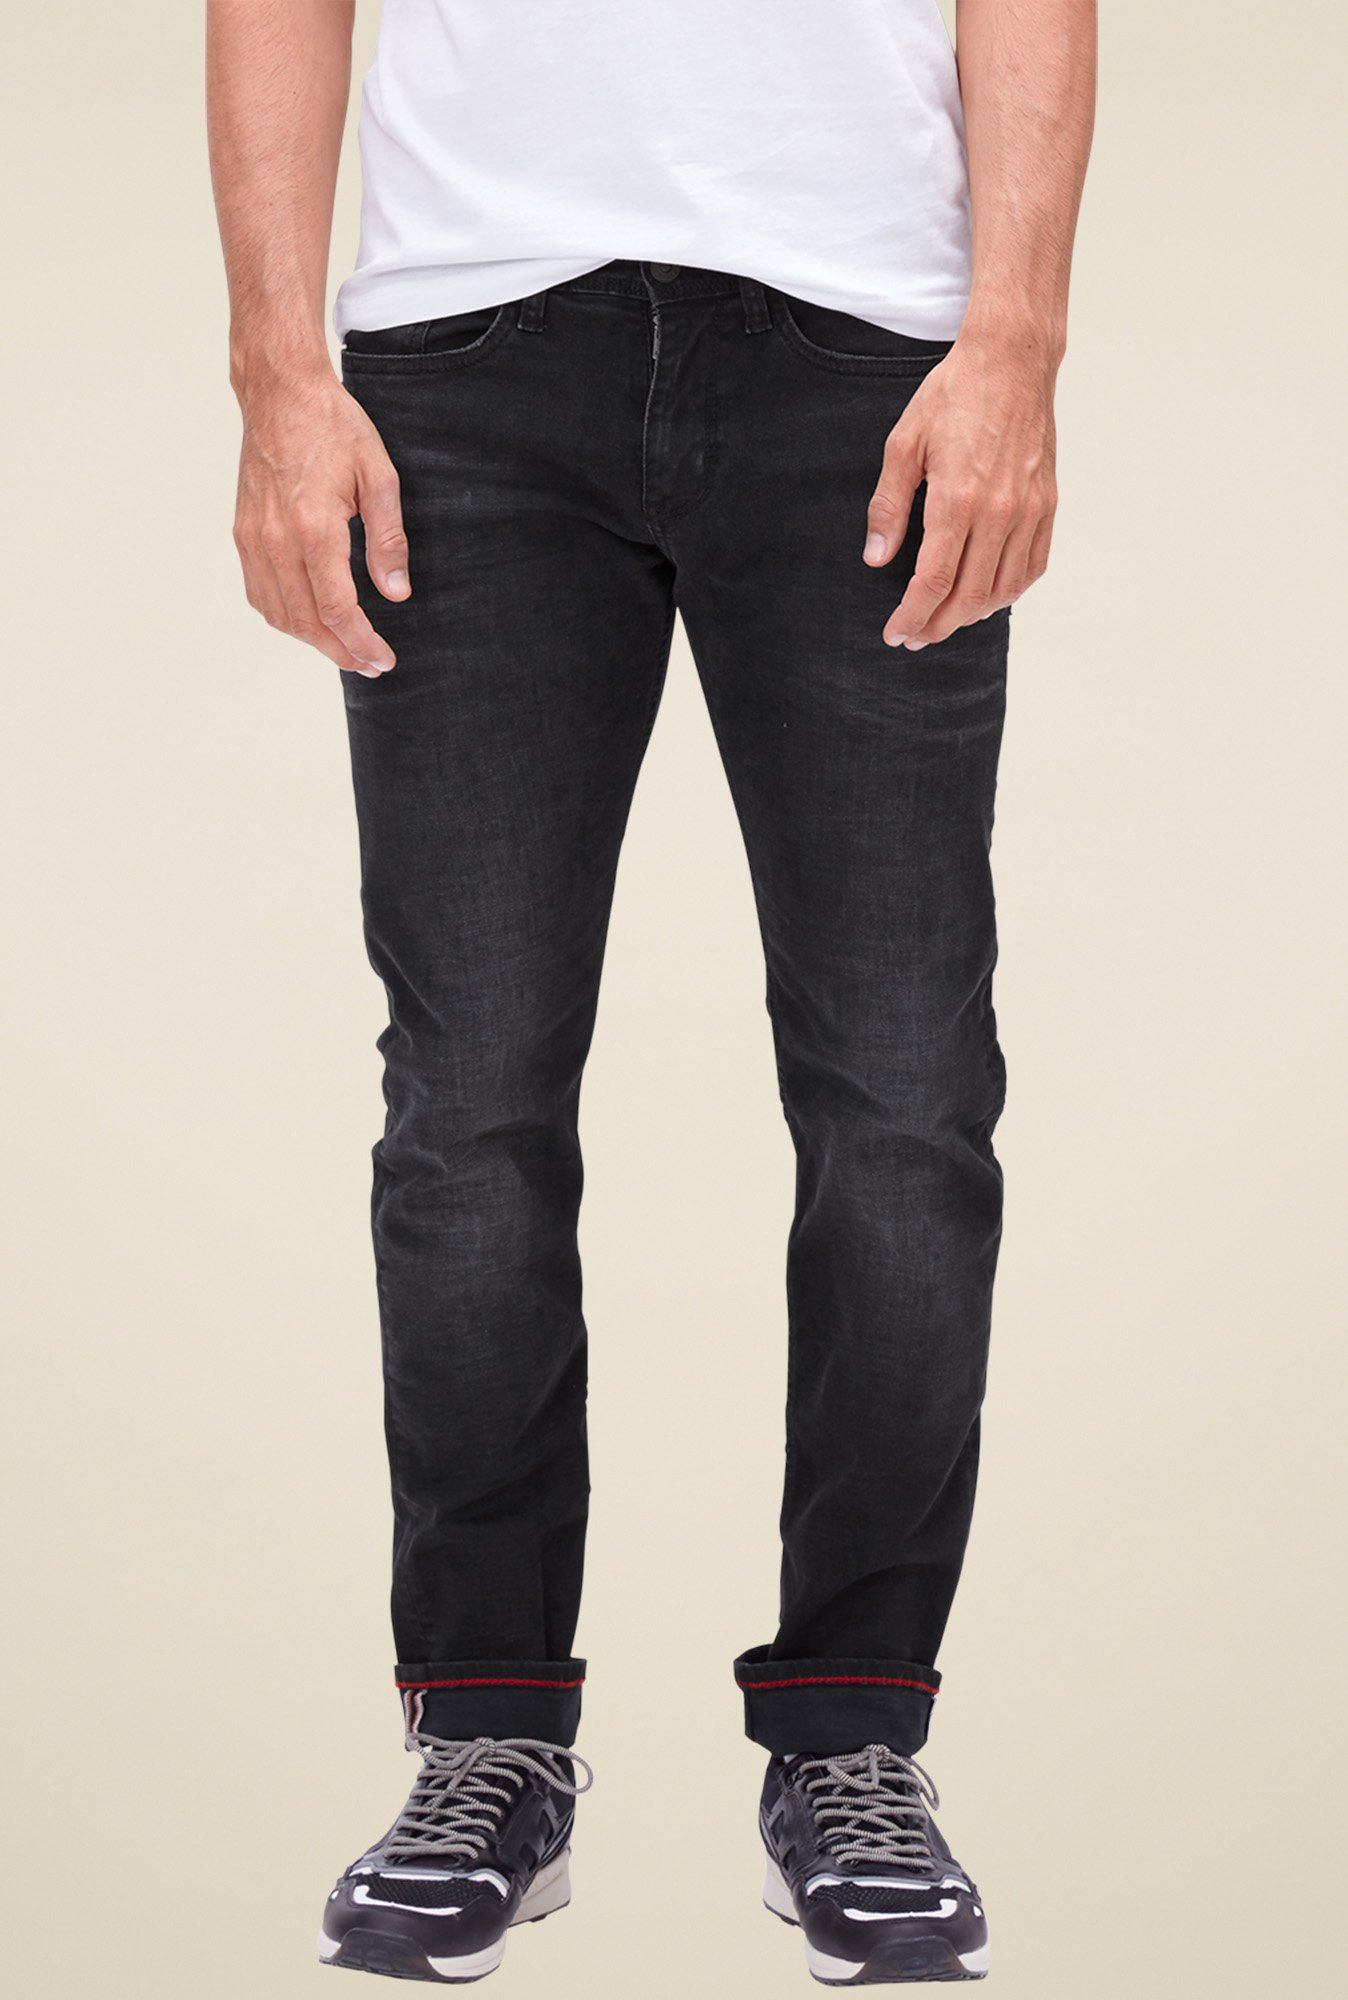 buy s oliver charcoal mid rise jeans for men online tata. Black Bedroom Furniture Sets. Home Design Ideas